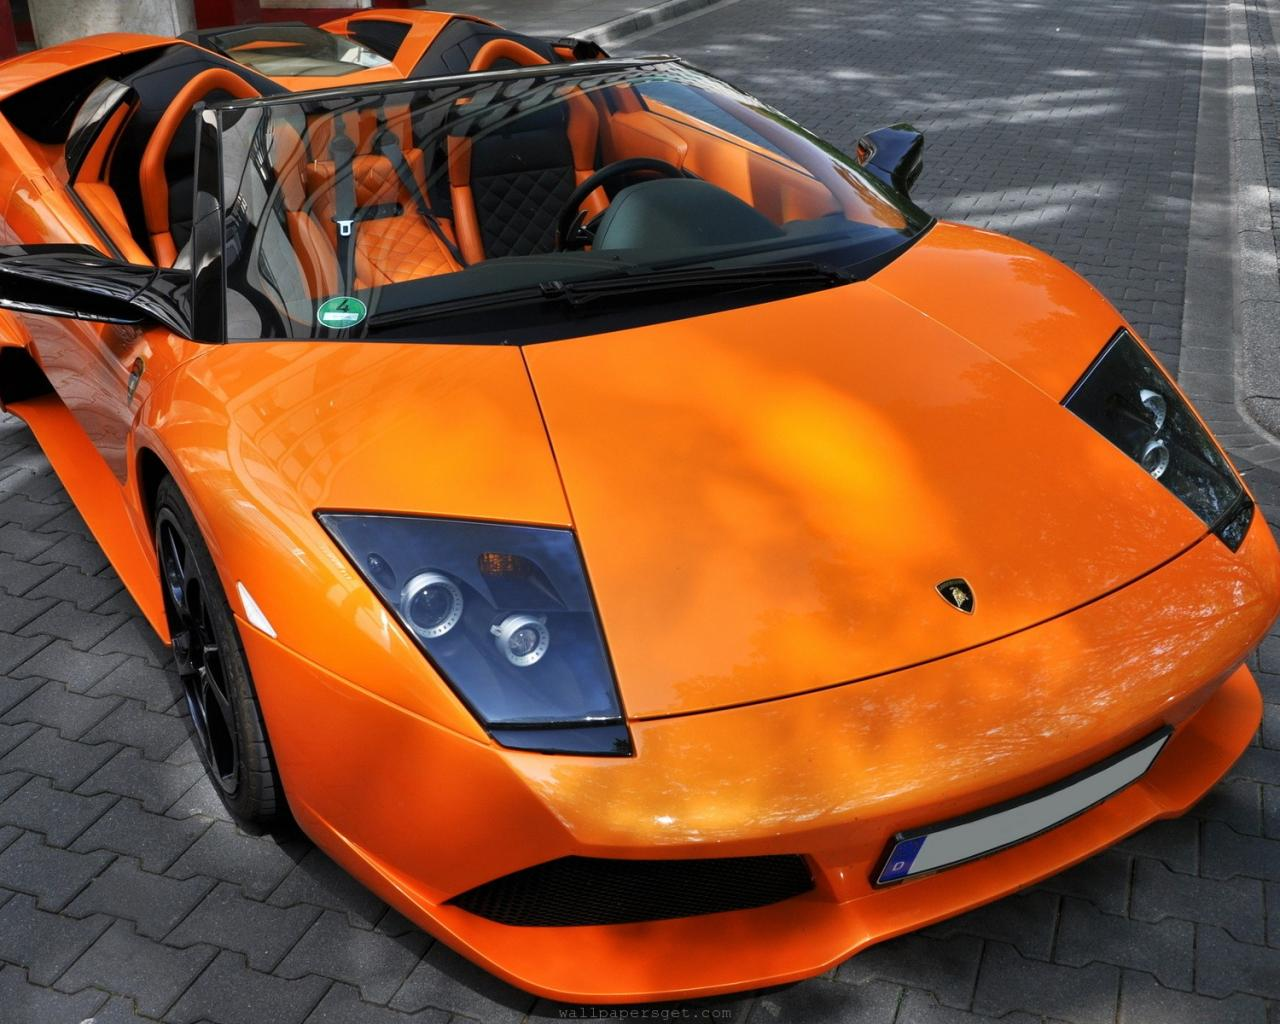 Luxury Lamborghini Cars: Orange Lamborghini Murcielago ...